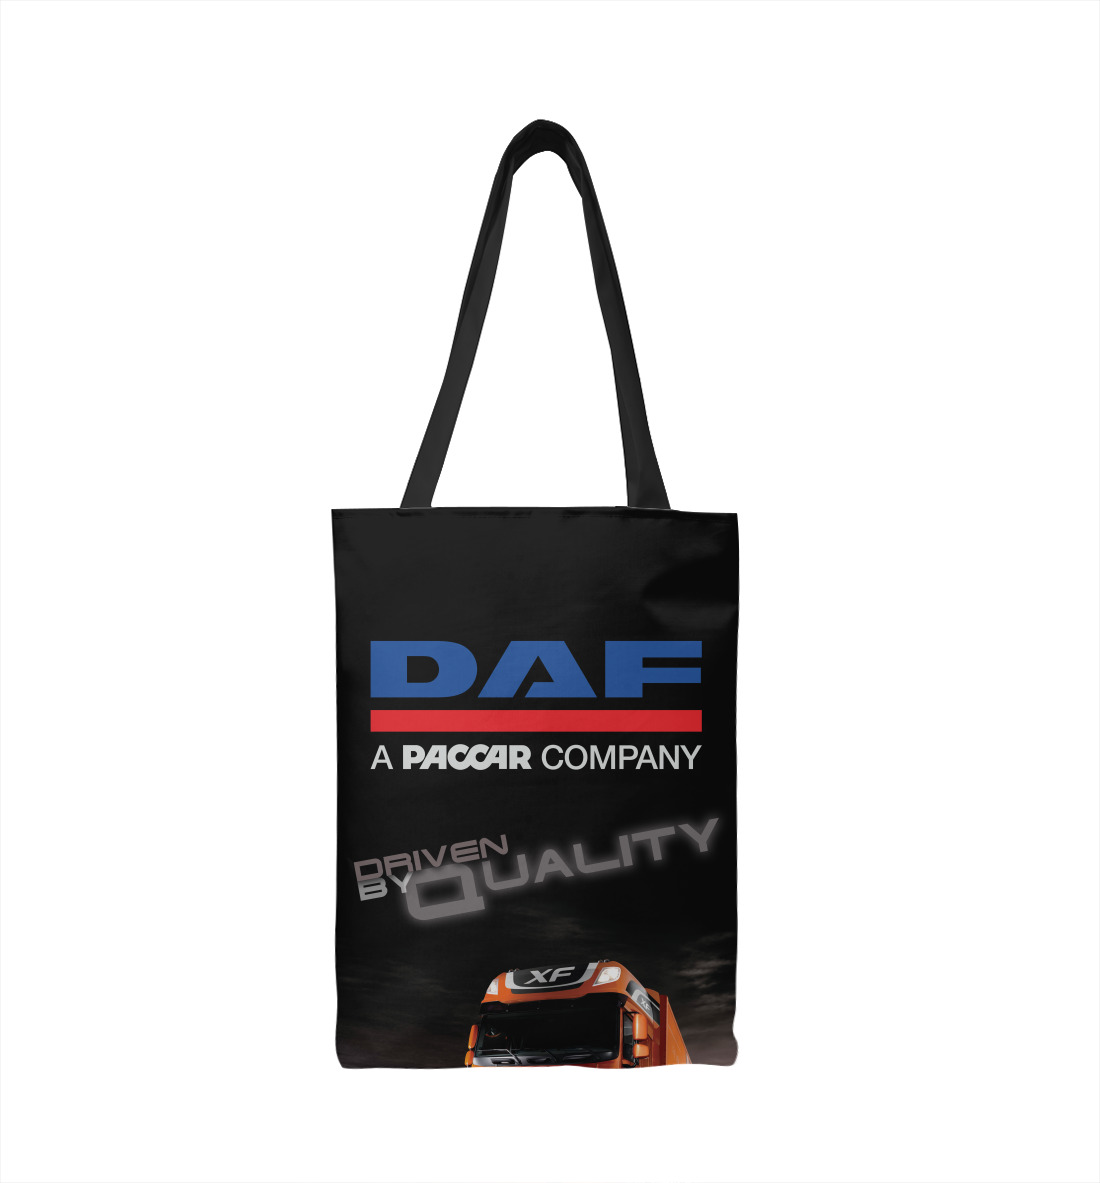 DAF - Driven By Quality